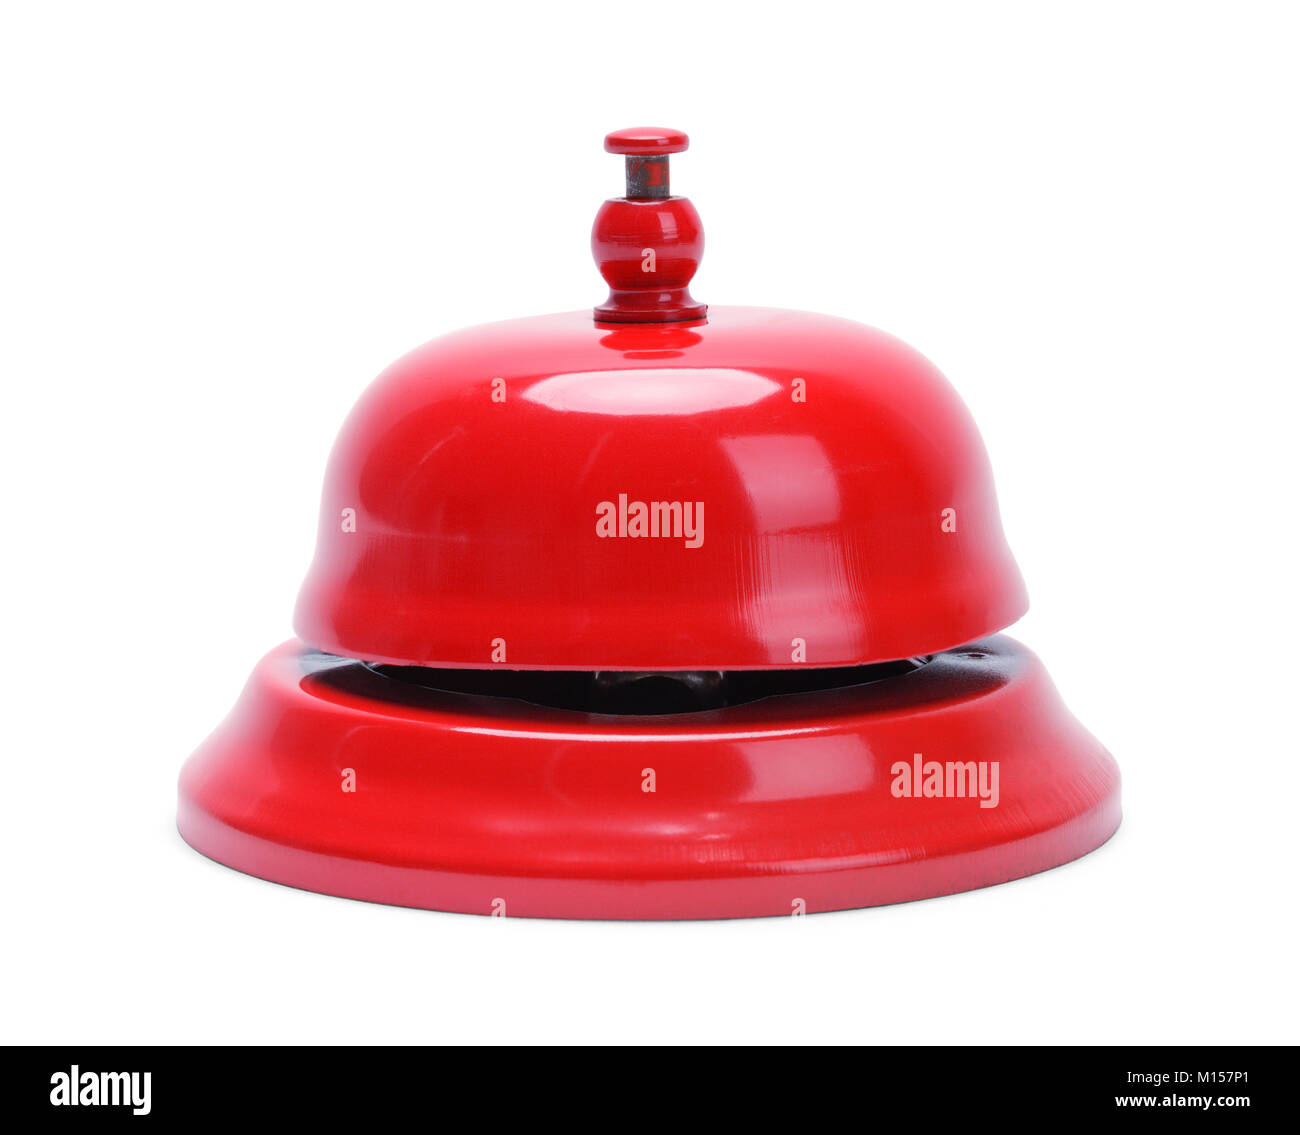 Metal Service Bell Isolated on White Background. - Stock Image